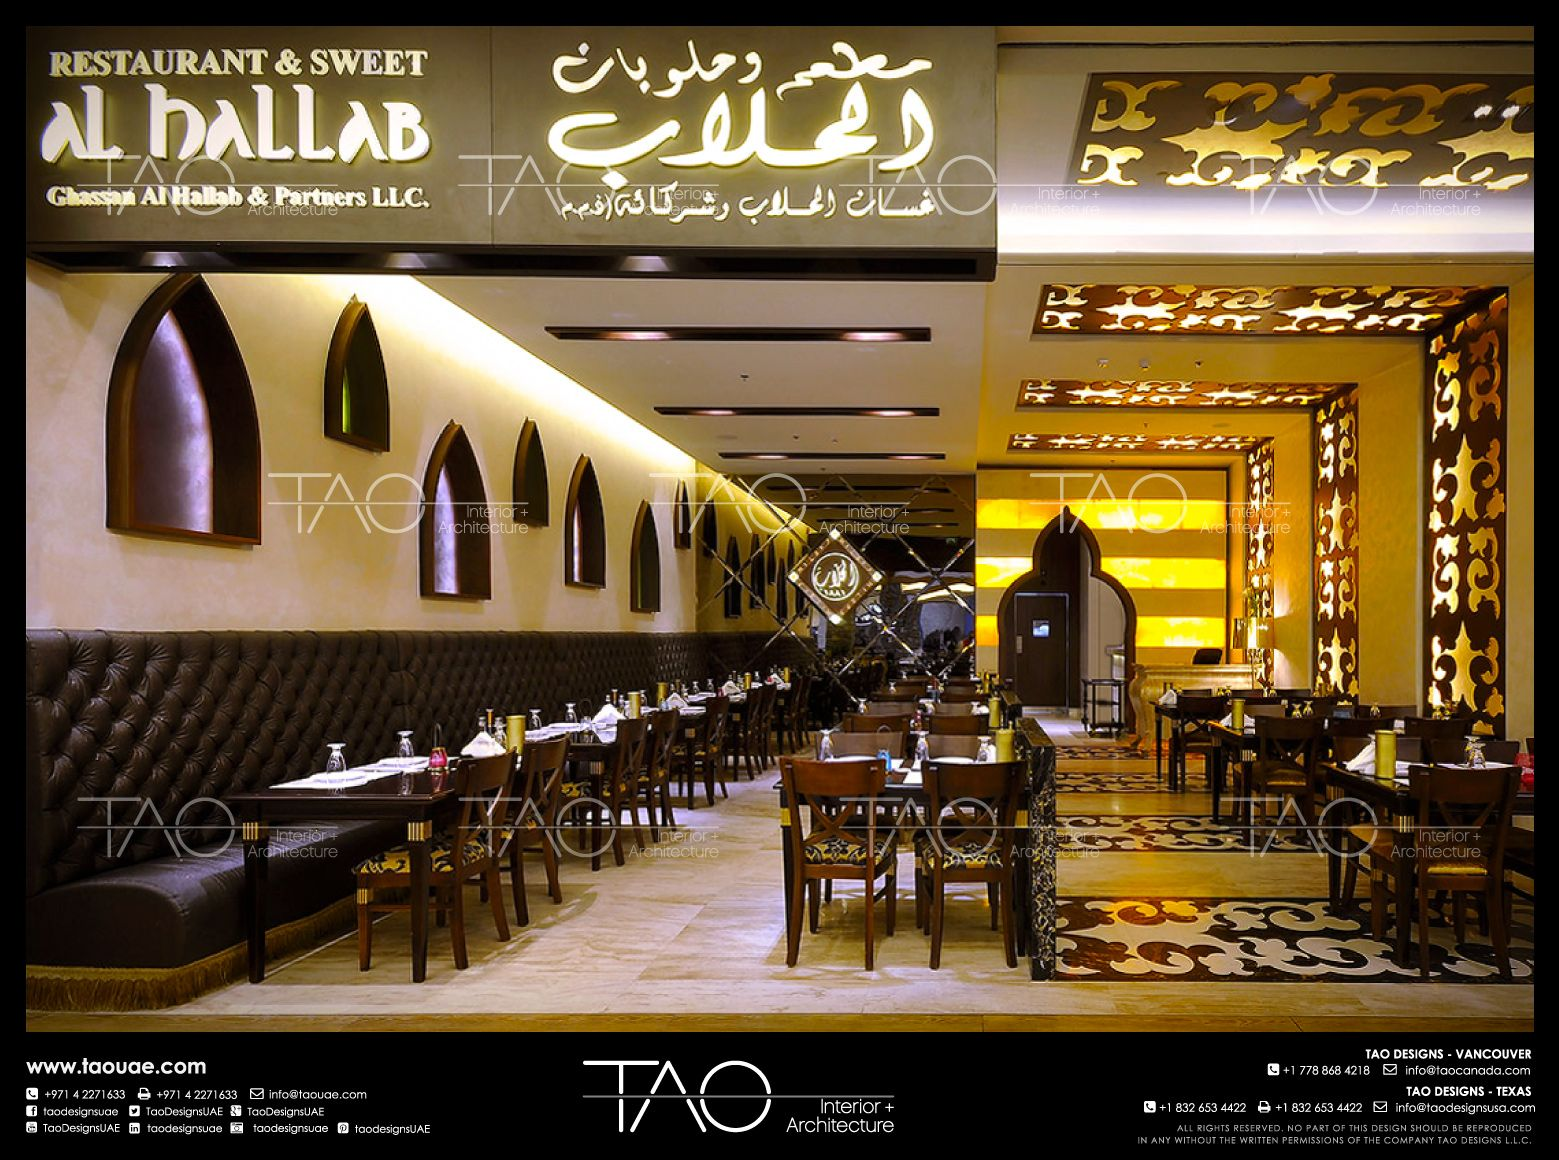 Al hallab restaurant shop front interior in moe dubai for Al zaher interior decoration llc